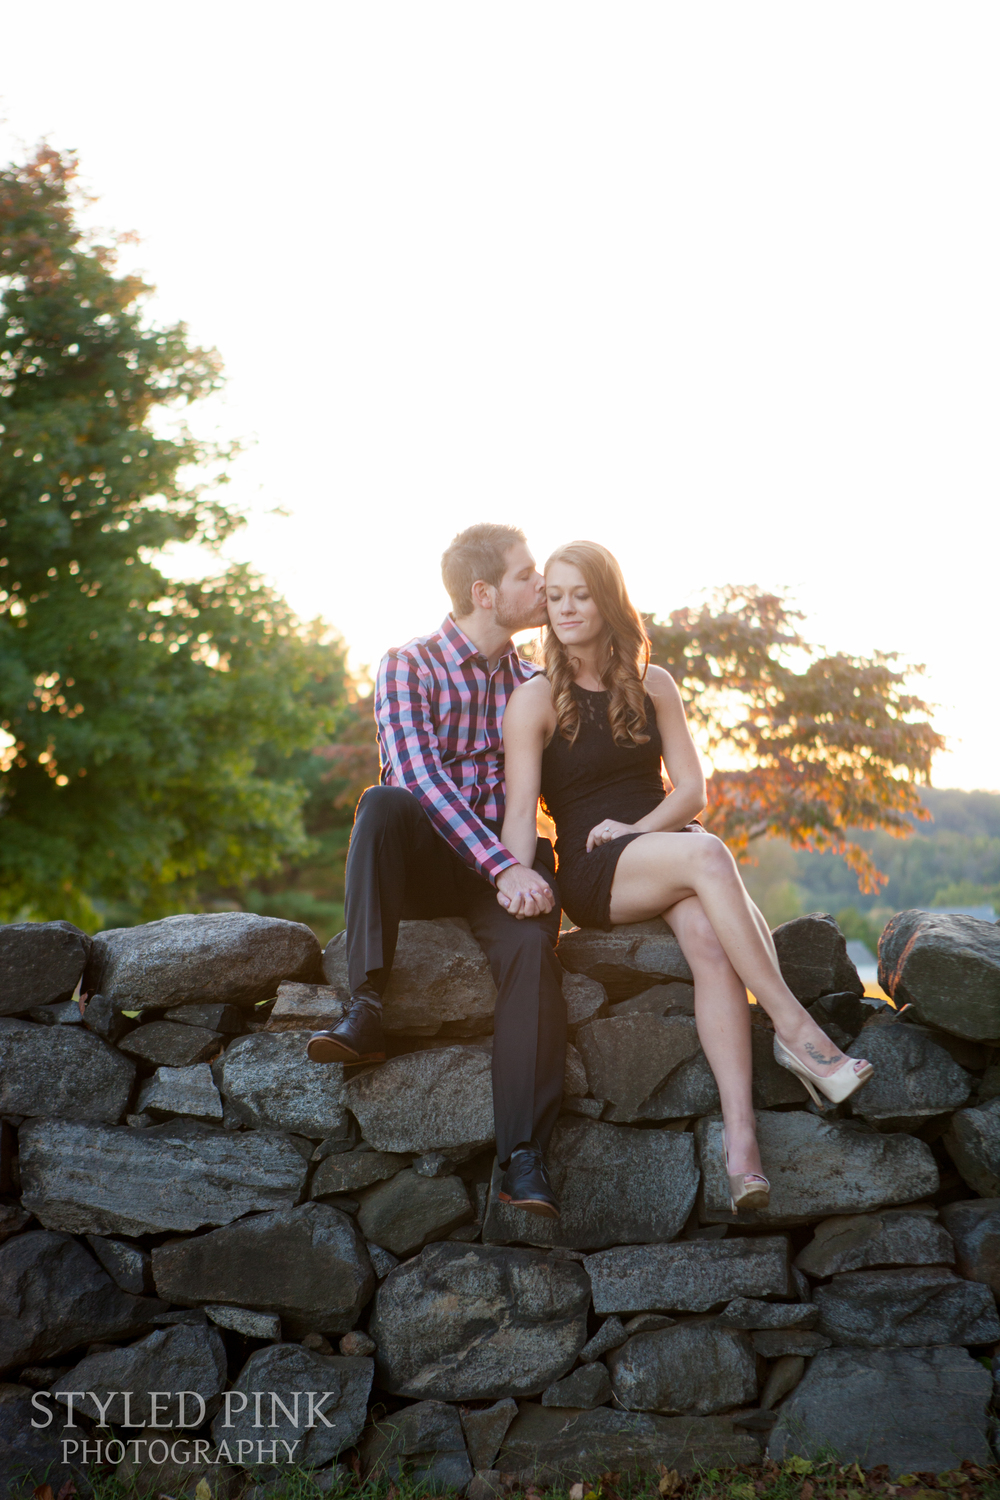 styled-pink-brandywine-state-park-engagement-11